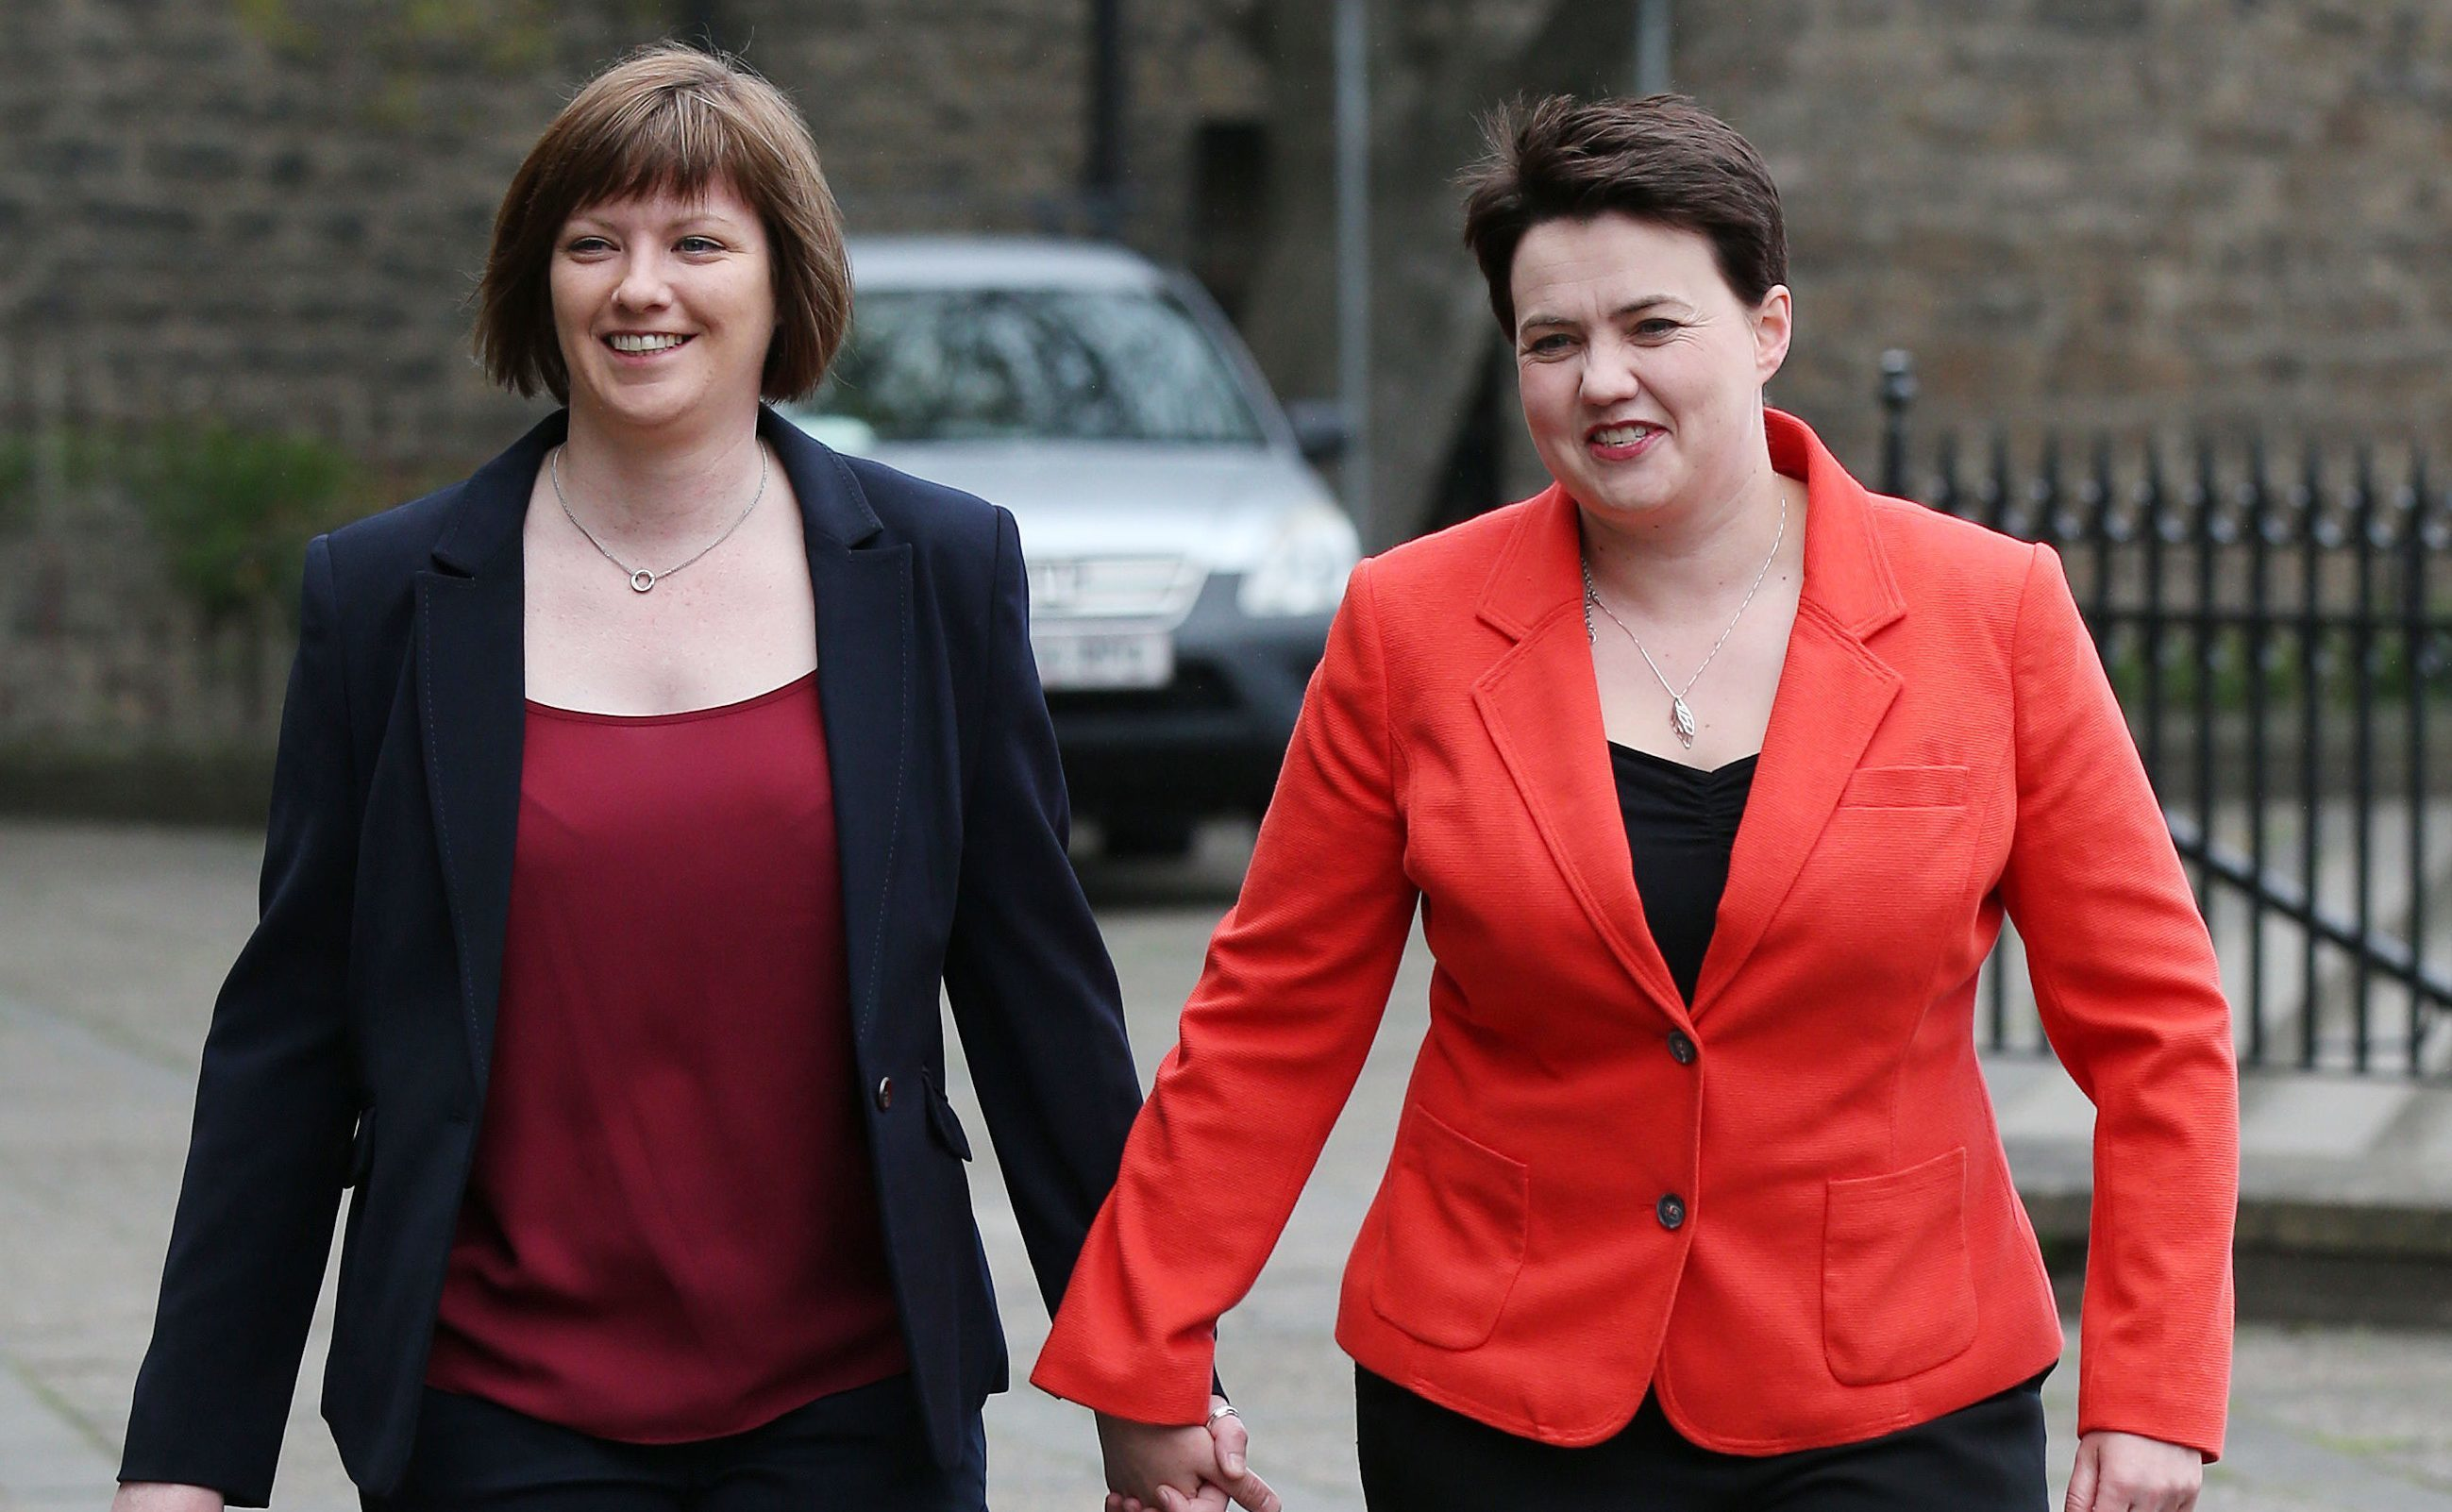 Scottish Conservative leader Ruth Davidson  and her partner Jen Wilson have got announced they are engaged.